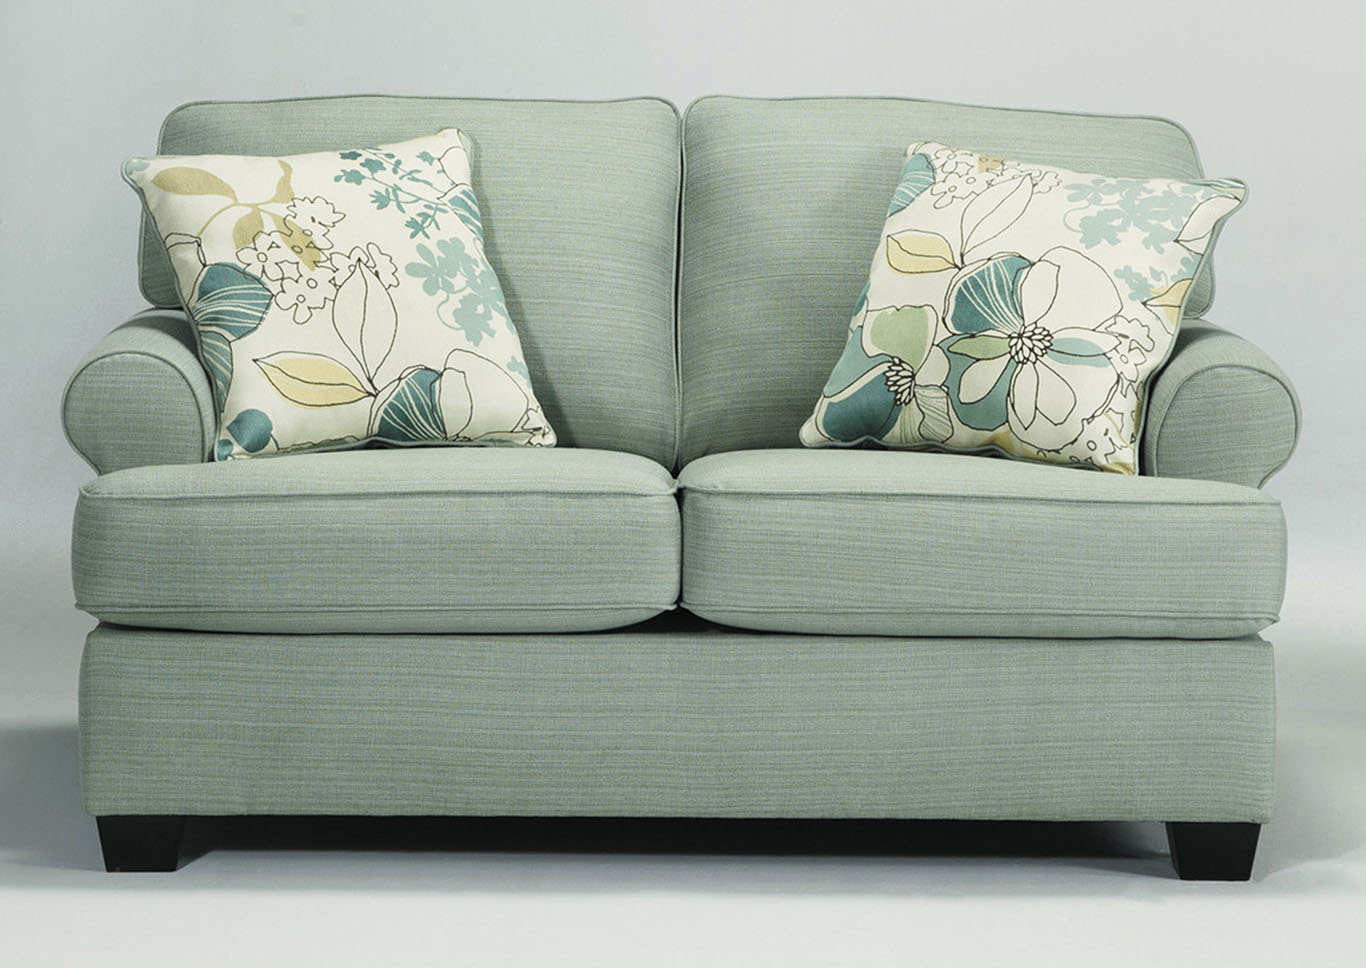 Daystar Seafoam Loveseat,Signature Design By Ashley